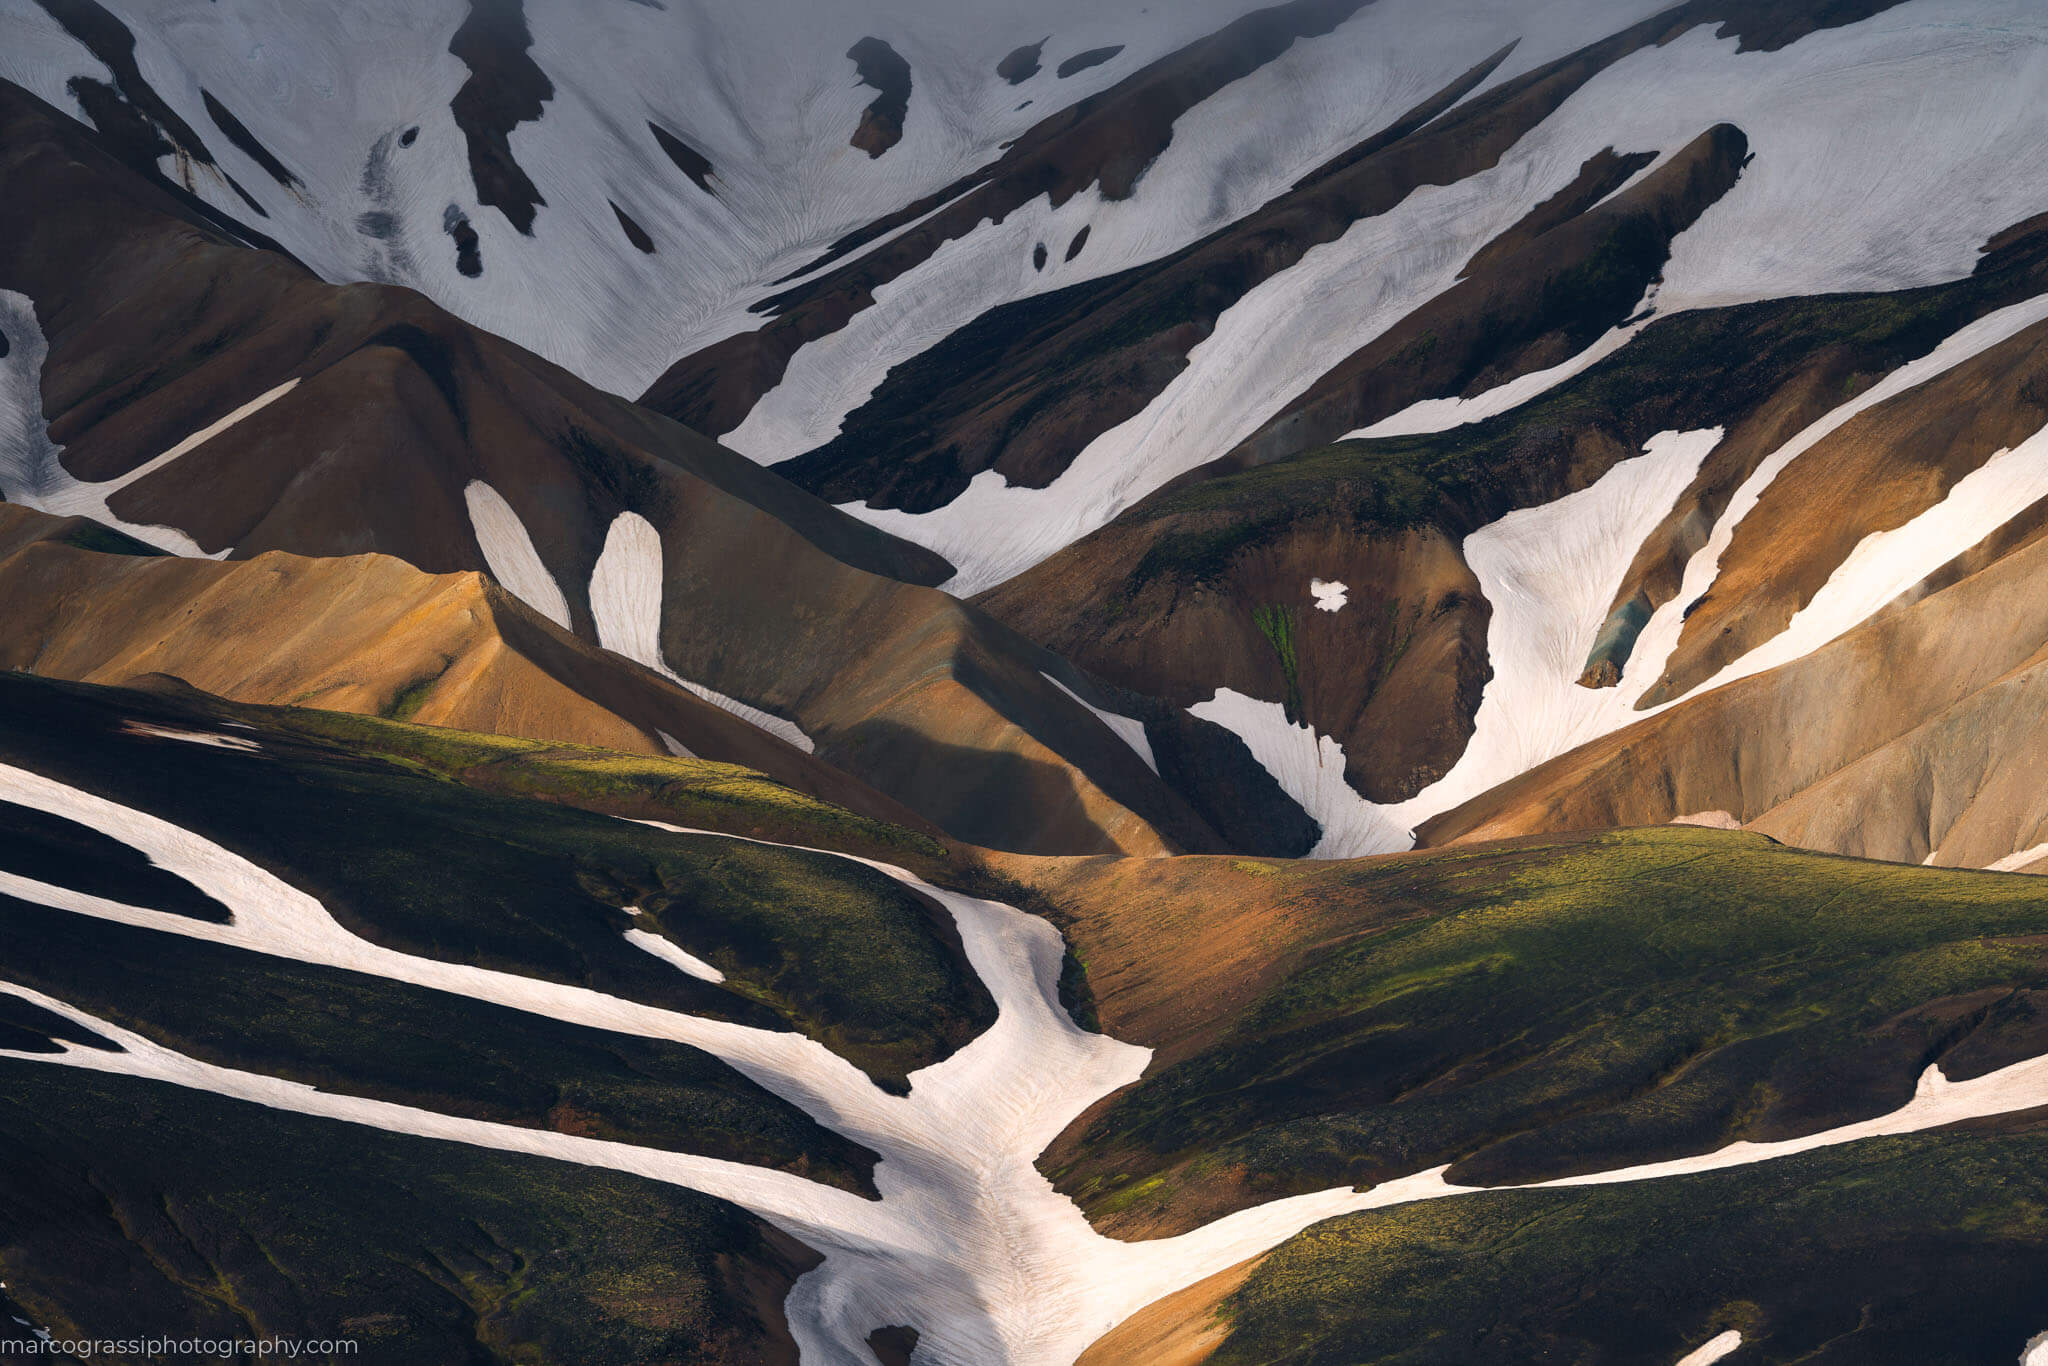 Highlands of Iceland, during the summer photo tour